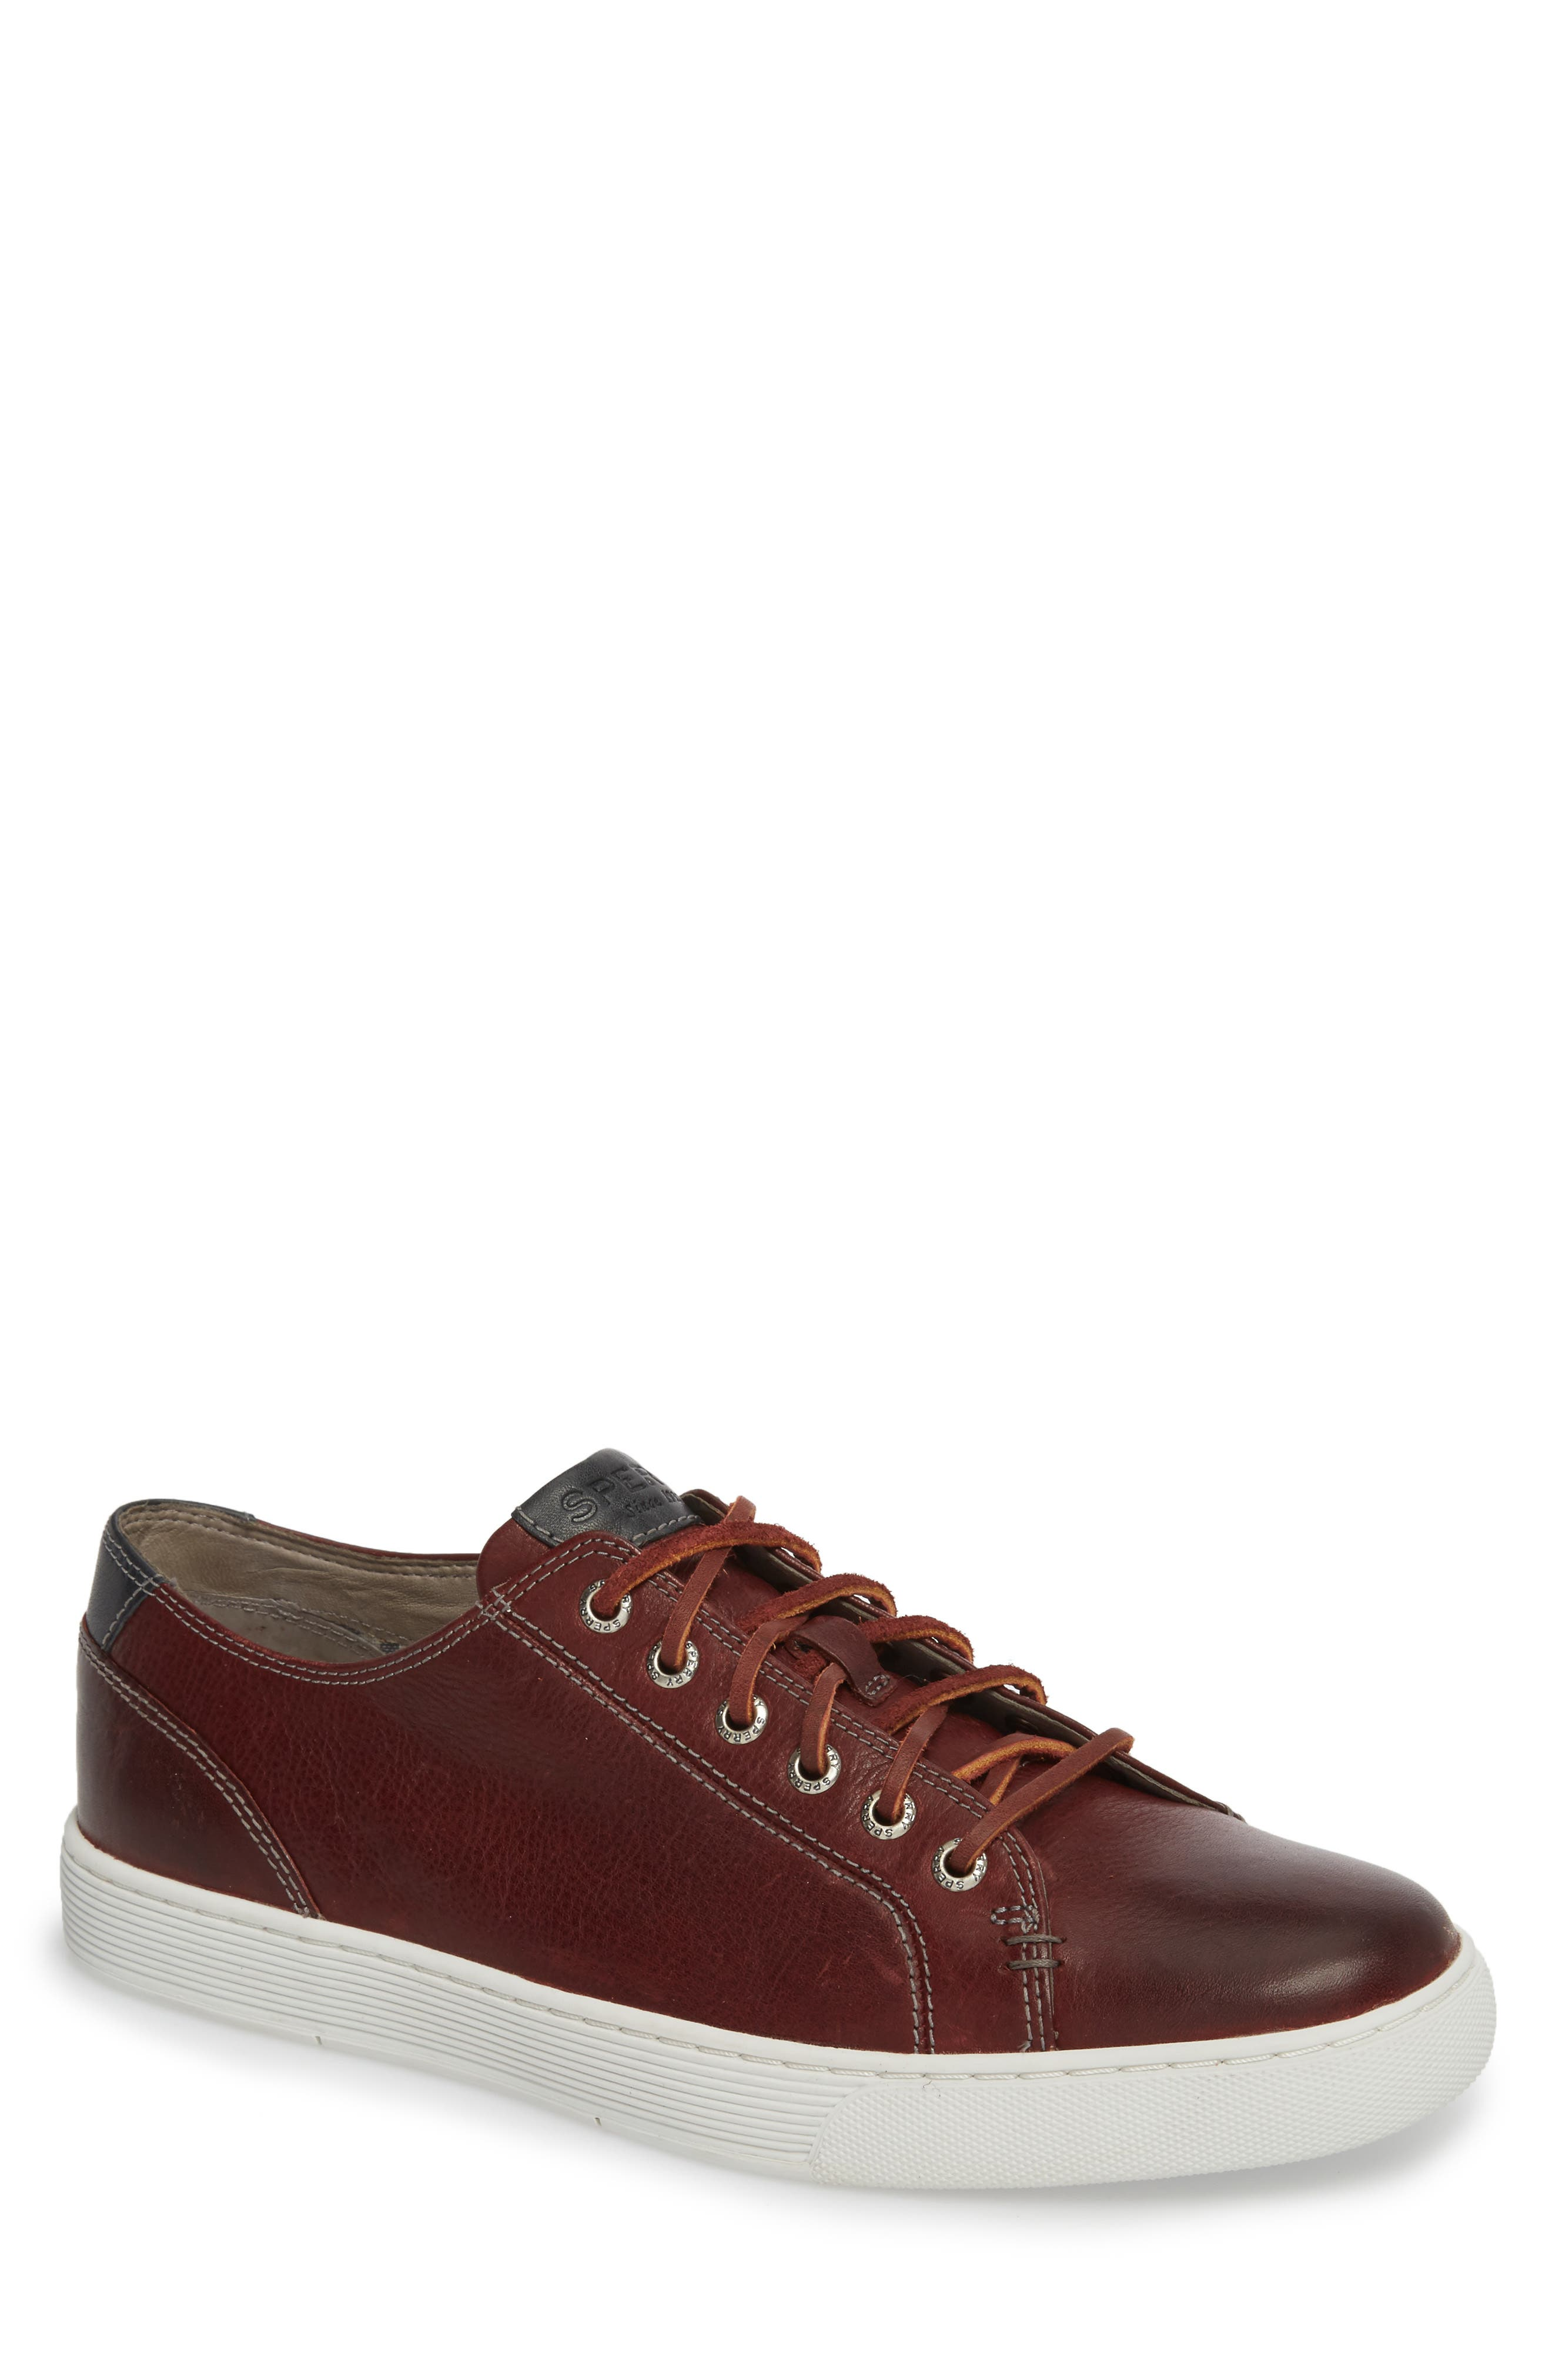 Gold Cup Sport Sneaker,                             Main thumbnail 1, color,